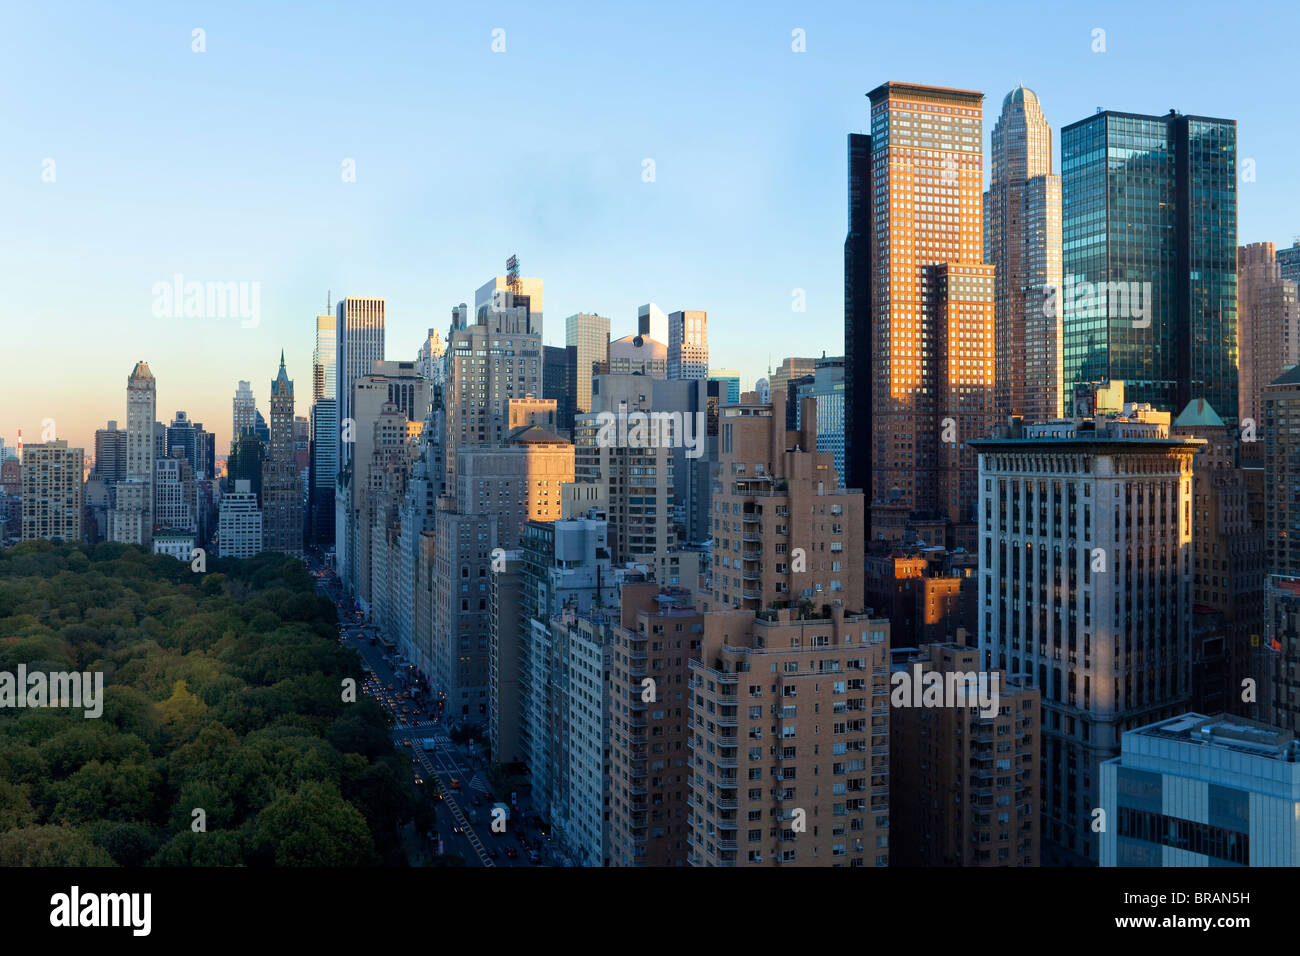 Buildings along South Central Park in Uptown Manhattan, New York City, New York, United States of America, North - Stock Image